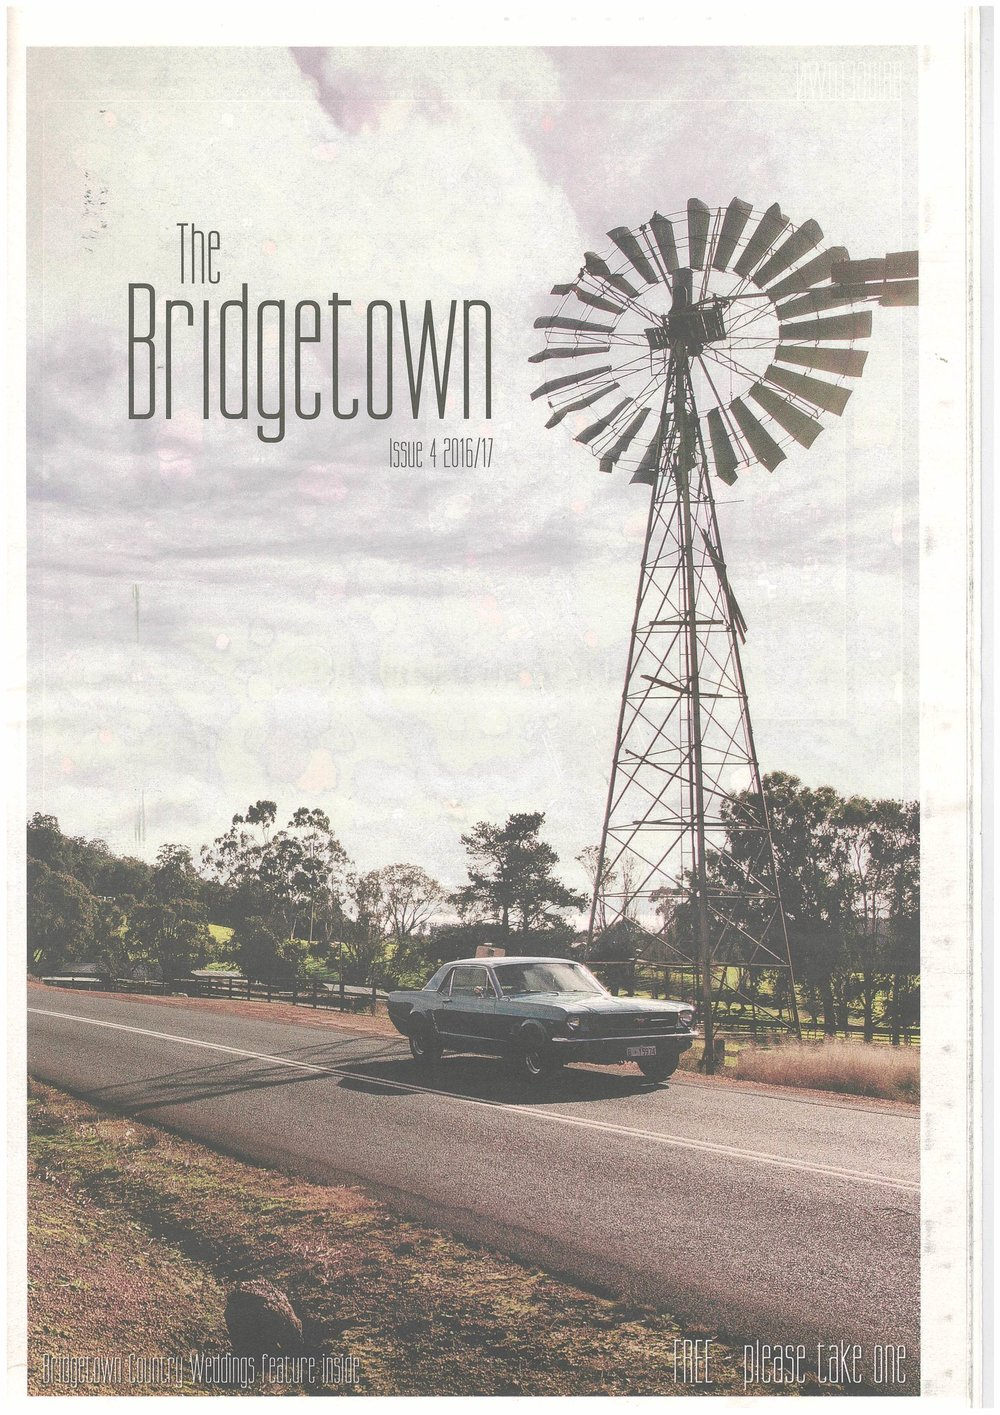 The Bridgetown Paper | Issue 4 2016/17